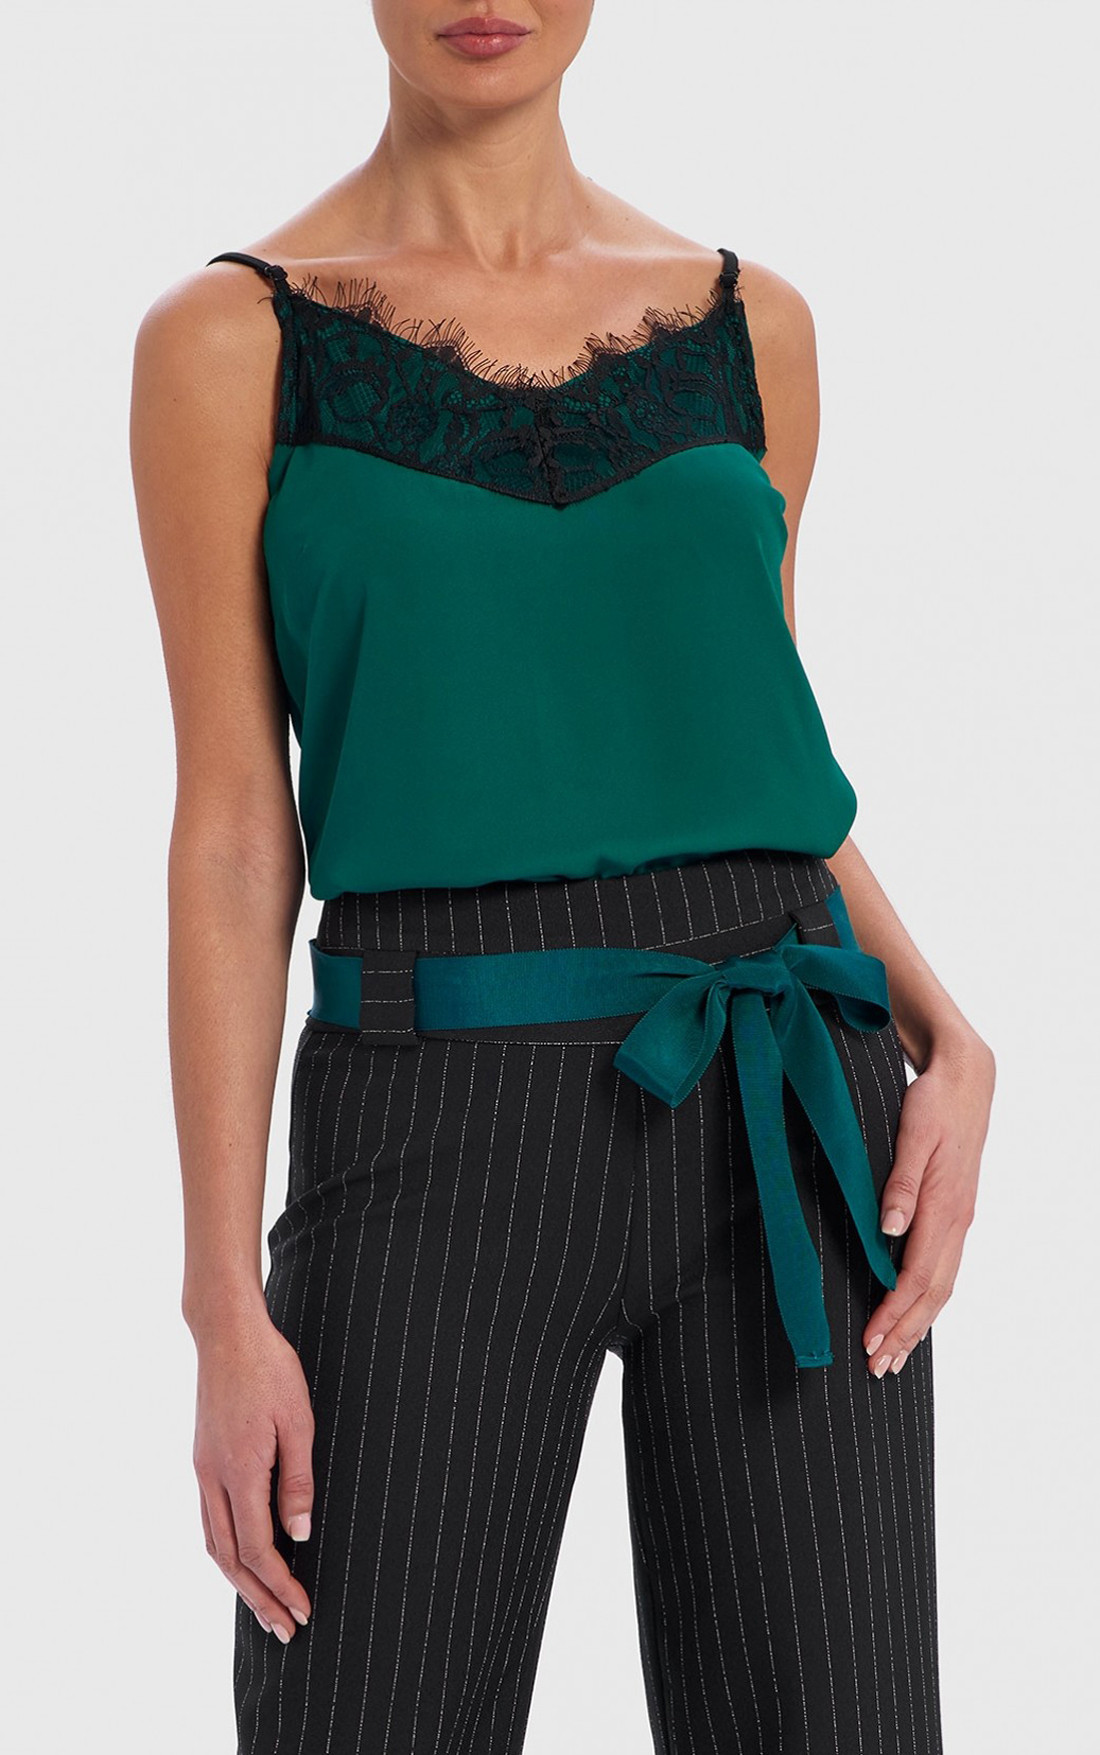 Forever Unique - Casey Green Camisole Top with Lace Trim (TJ9722)